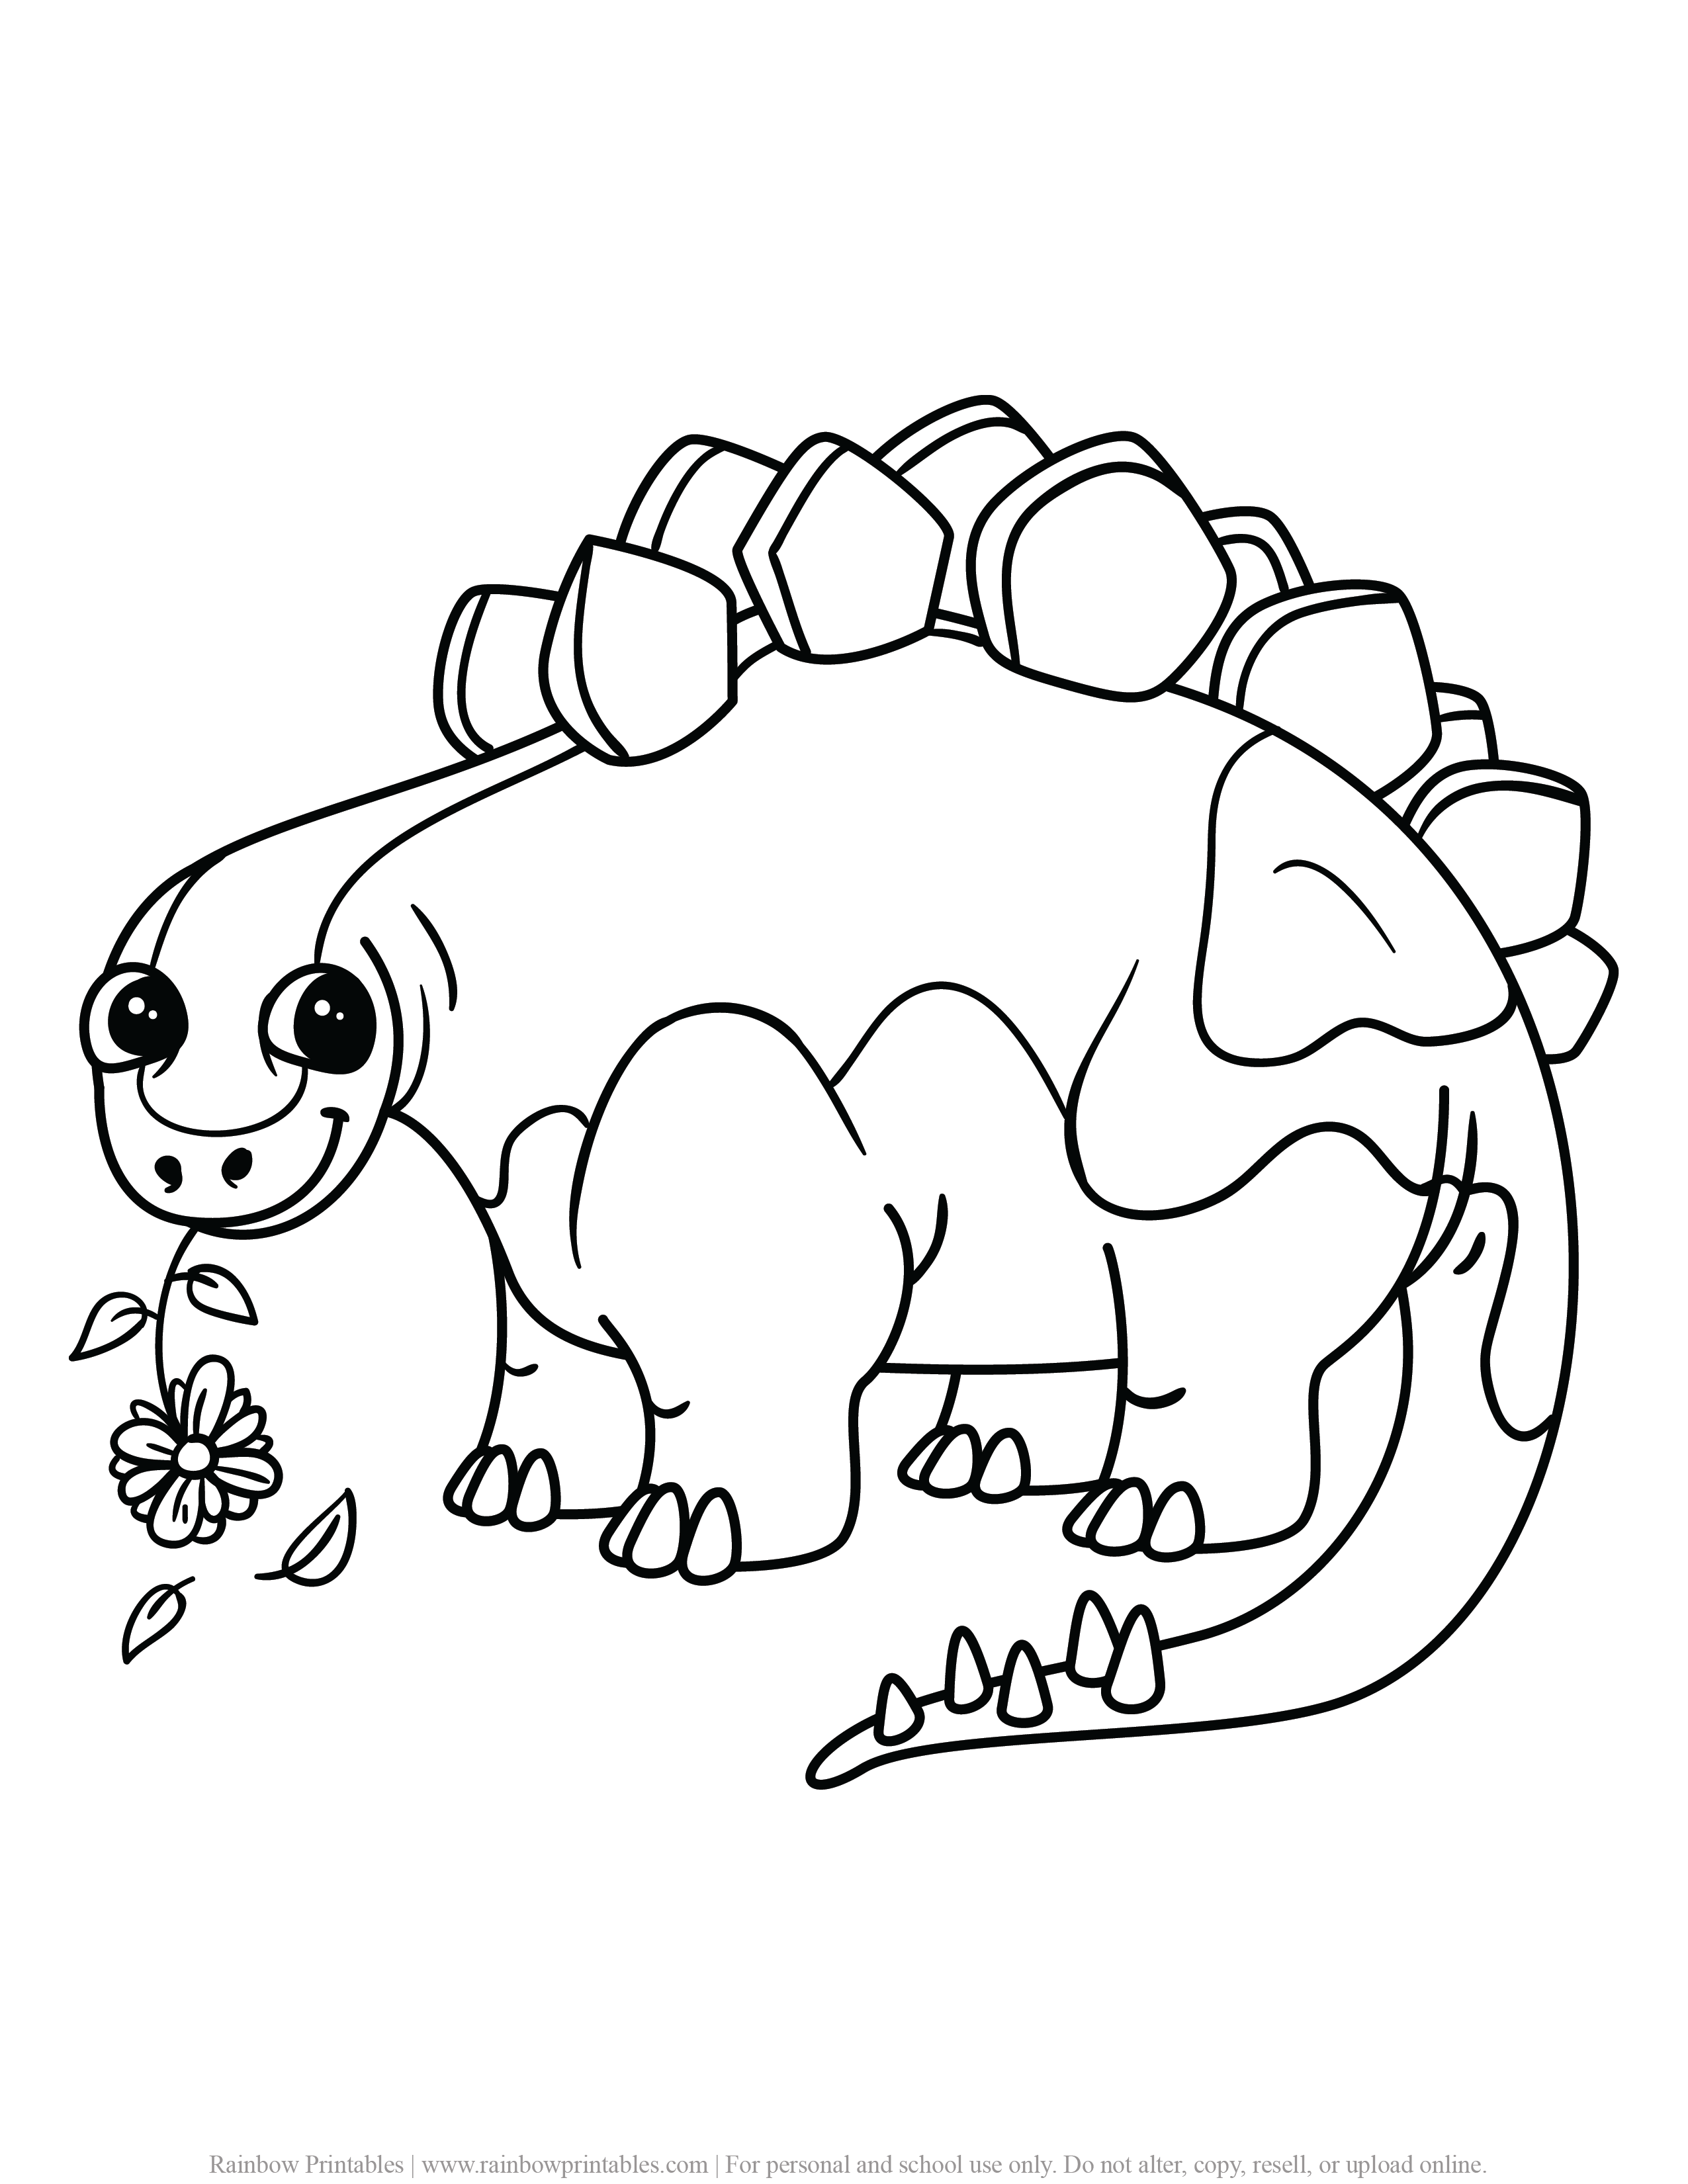 FREE DINOSAUR COLORING PAGES ACTIVITY FOR KIDS AND BOYS DINO DRAGON PRINTABLE-11